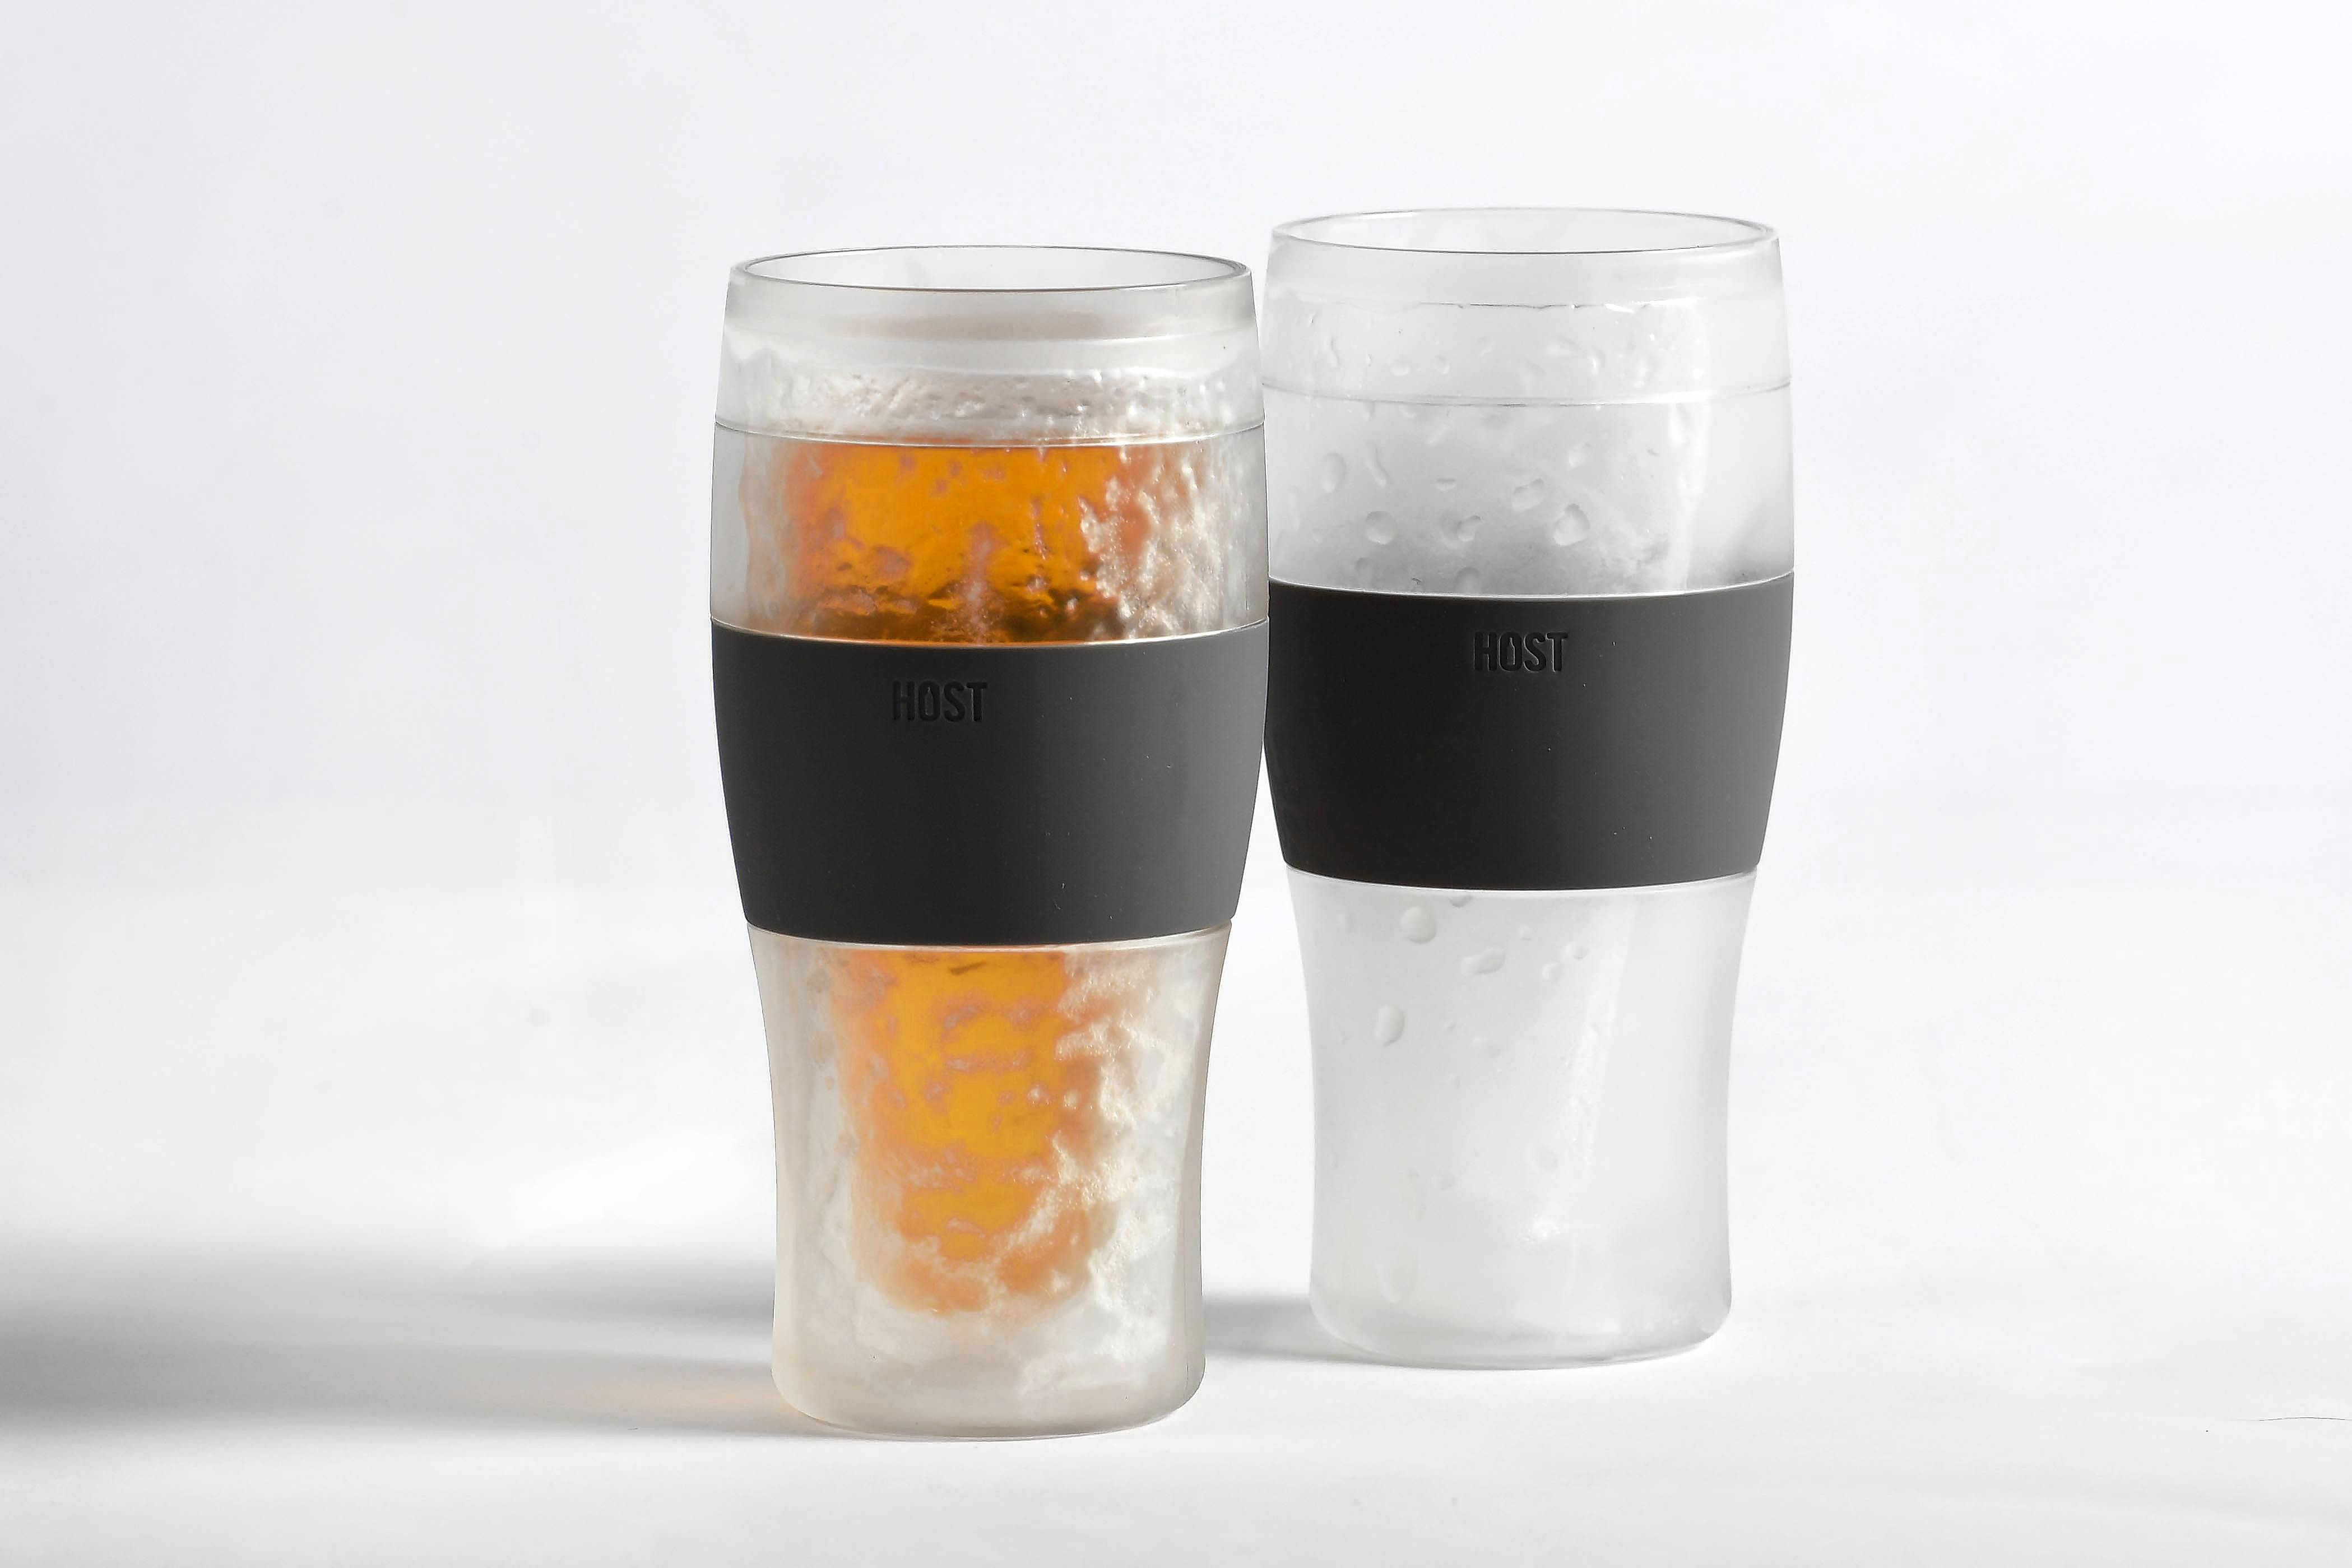 Host's Freeze cooling pint glasses, $18.50, amazon.com. MUST CREDIT: Photo for The Washington Post by Katherine Frey